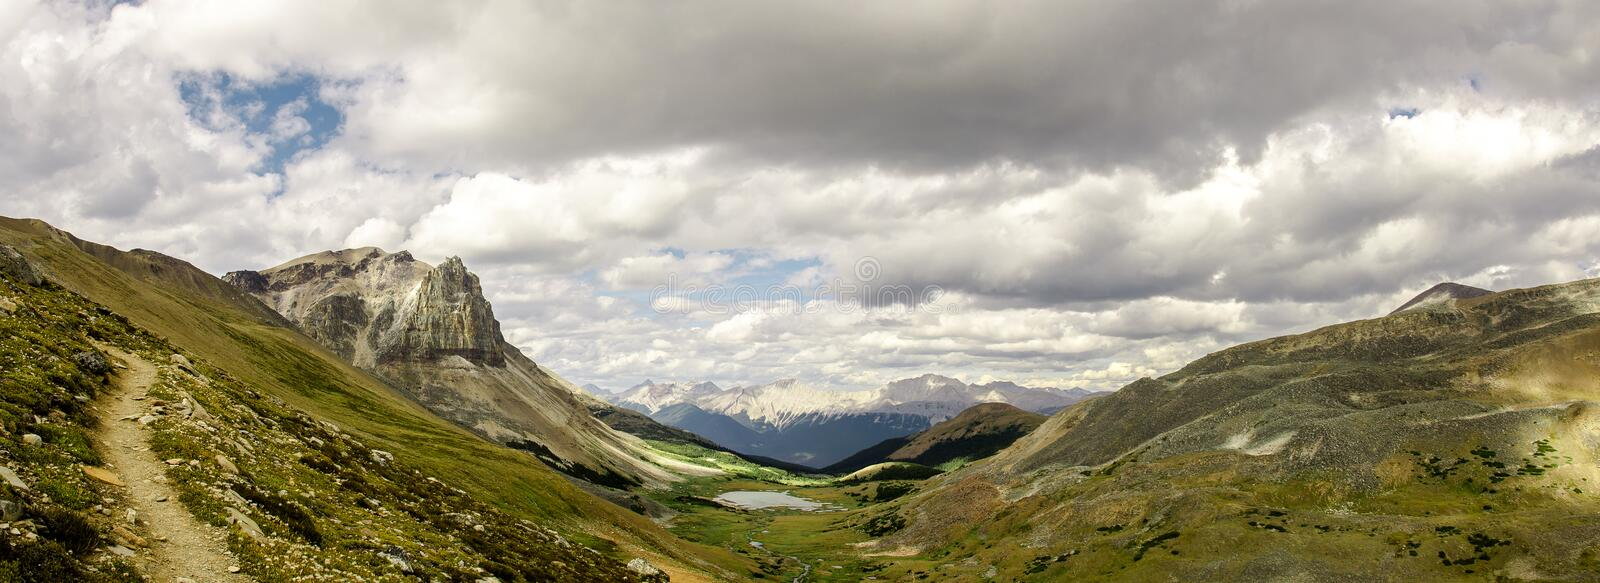 Go hiking Skyline trail, you will see that scenic view of Curator Lake in the Rocky Mountains royalty free stock photo